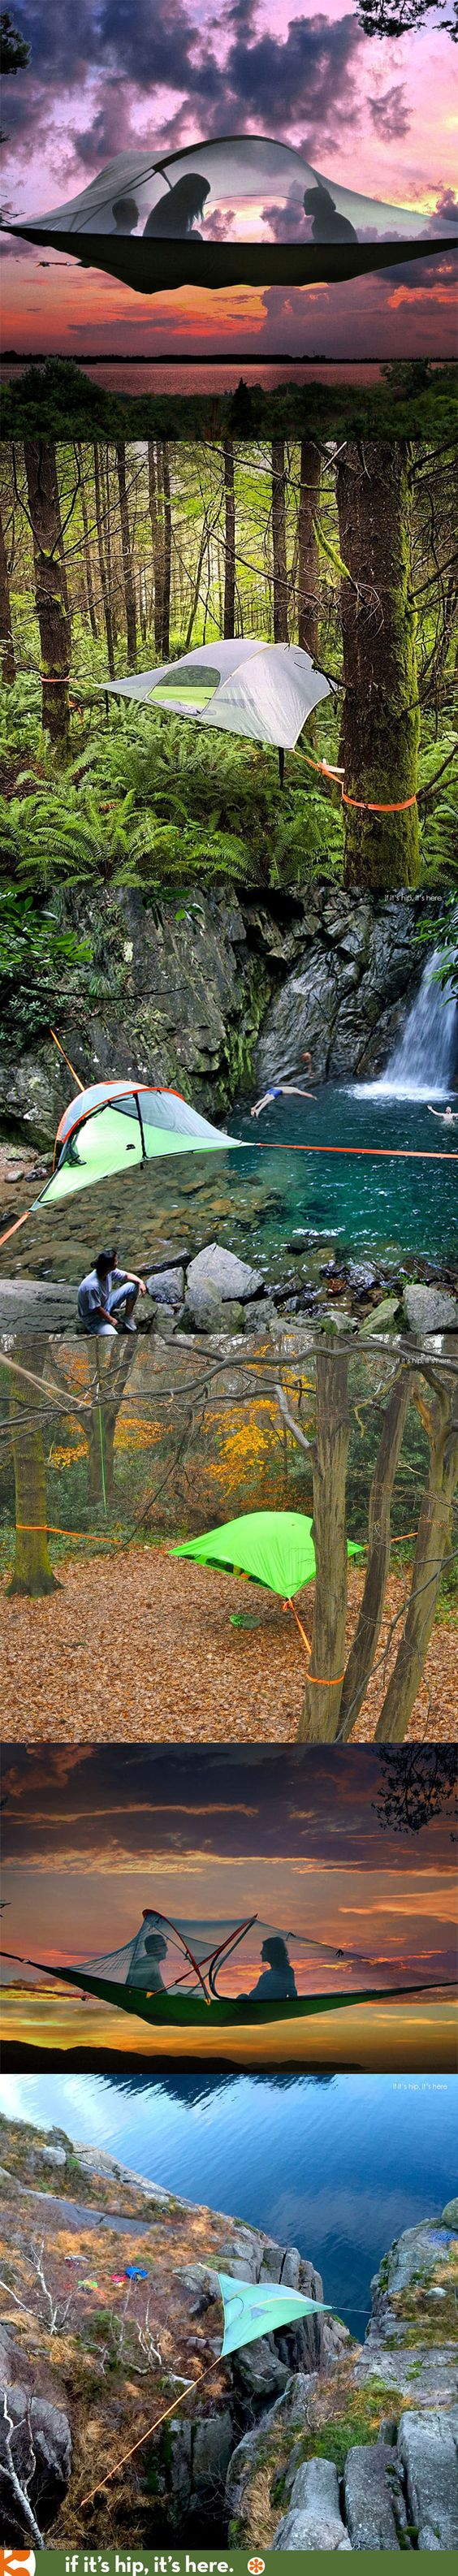 Tentsile Tree Tents are amazing. These 3-point anchor suspended tents (and hammocks) allow you to camp with a great view and no crawly bugs, wetness or icky ground stuff!